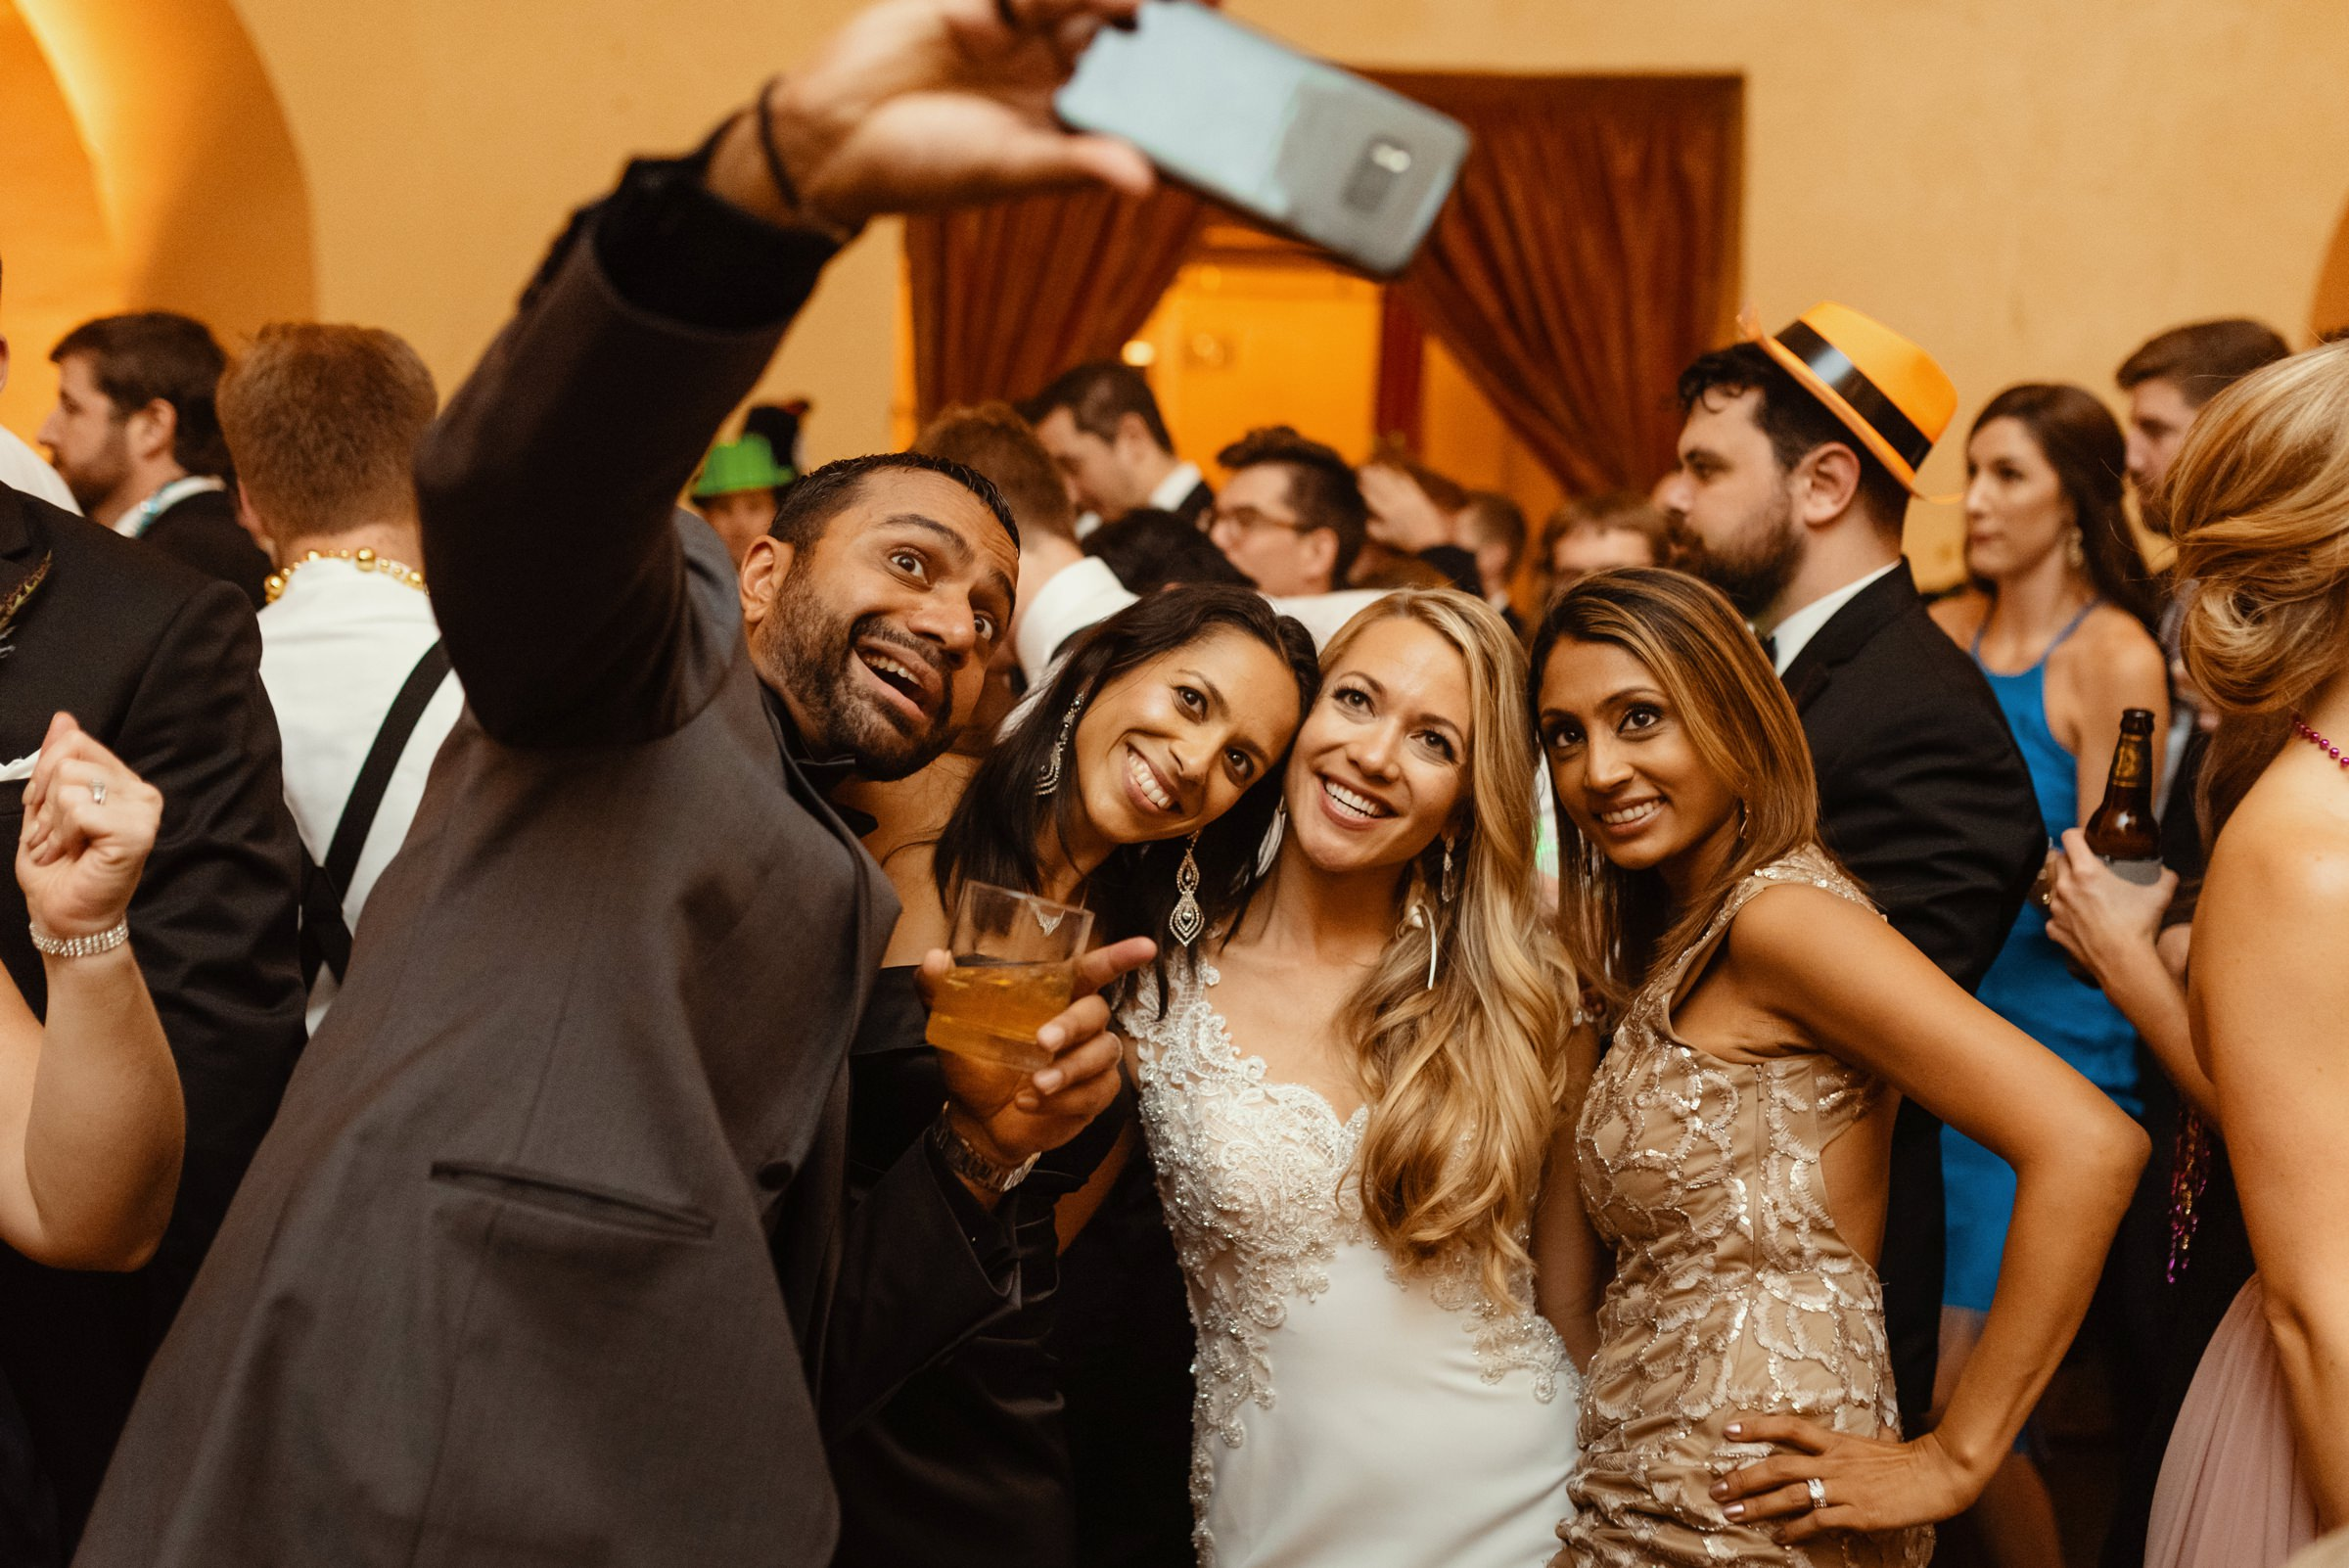 Selfie with bride and sultry guests - photo by Dark Roux